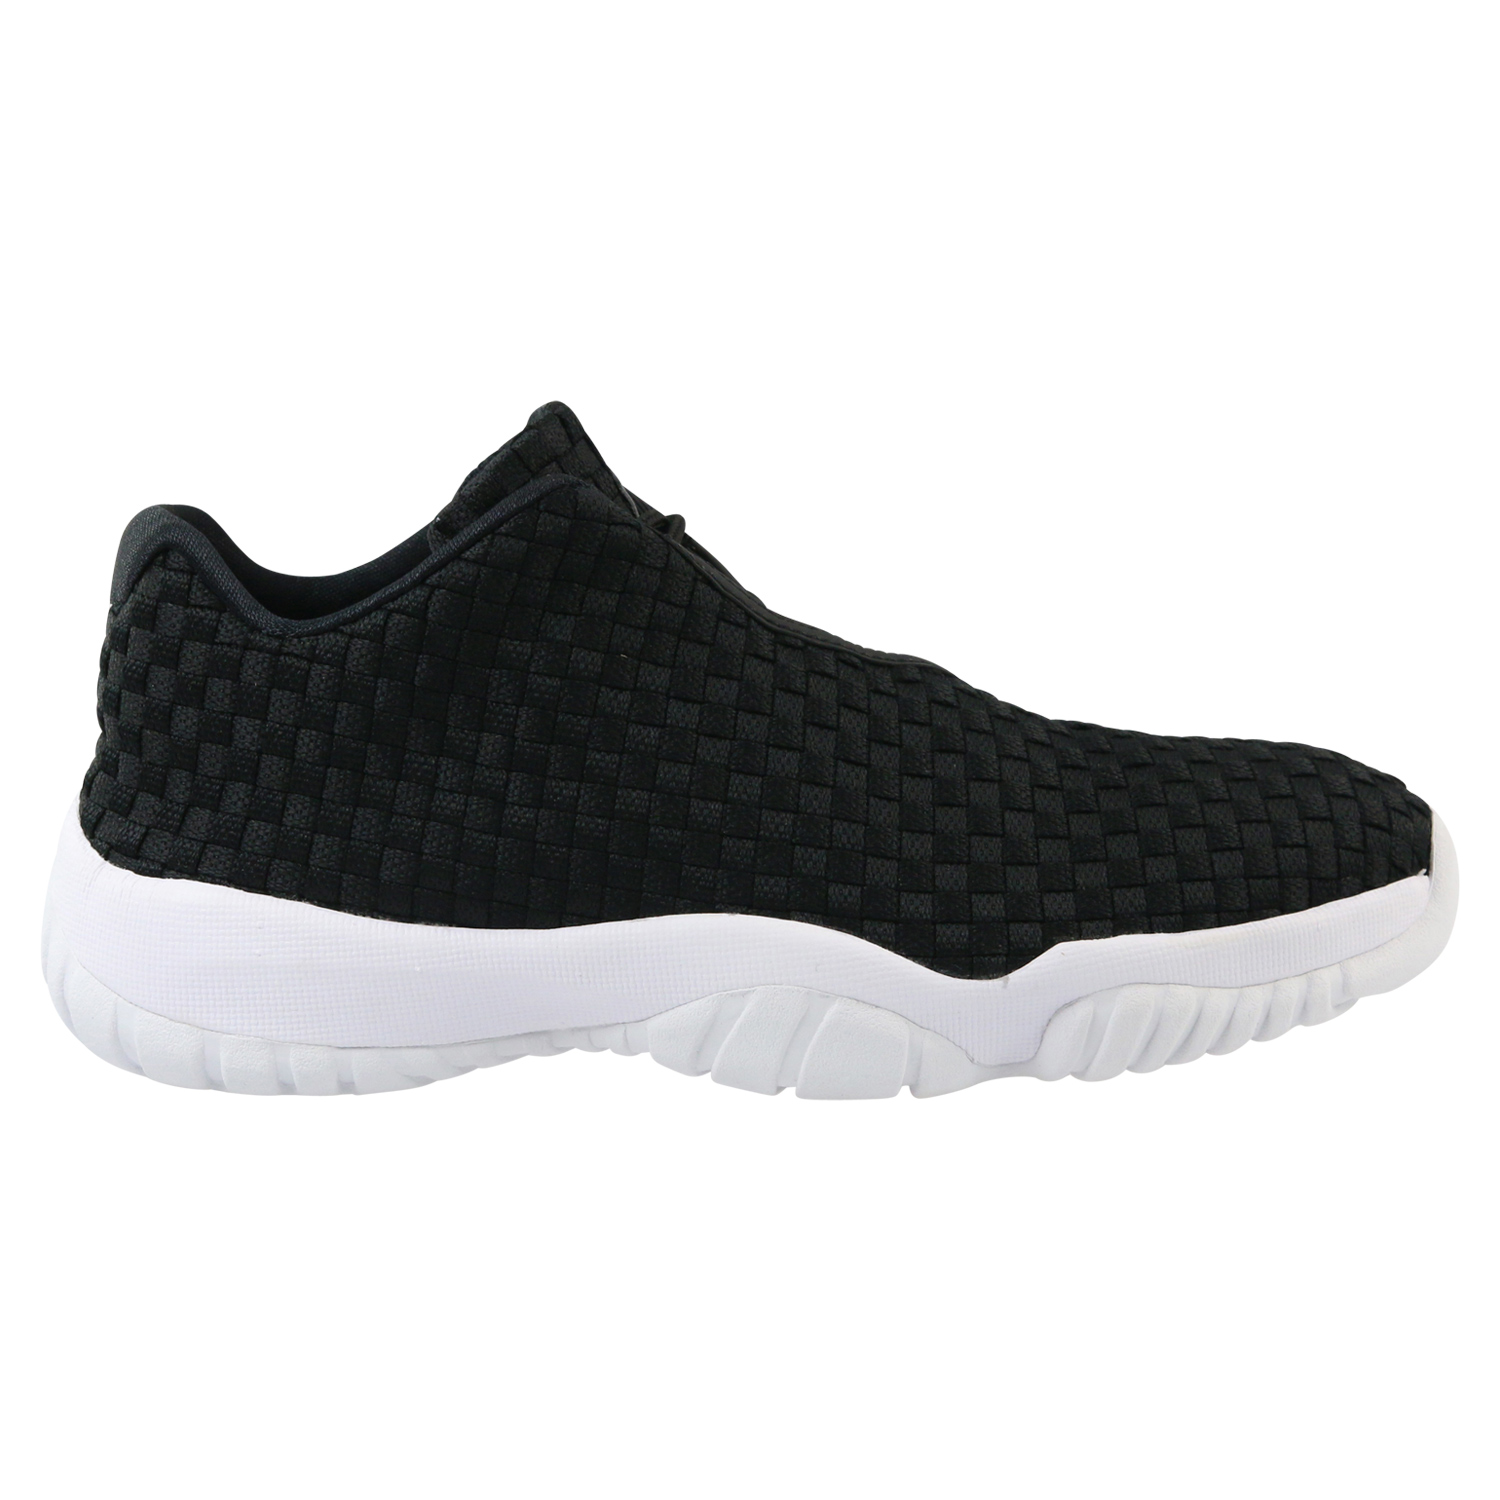 wholesale dealer a0829 49e6a ... get nike air jordan future low sneaker herren sneaker 30f4f 5943f